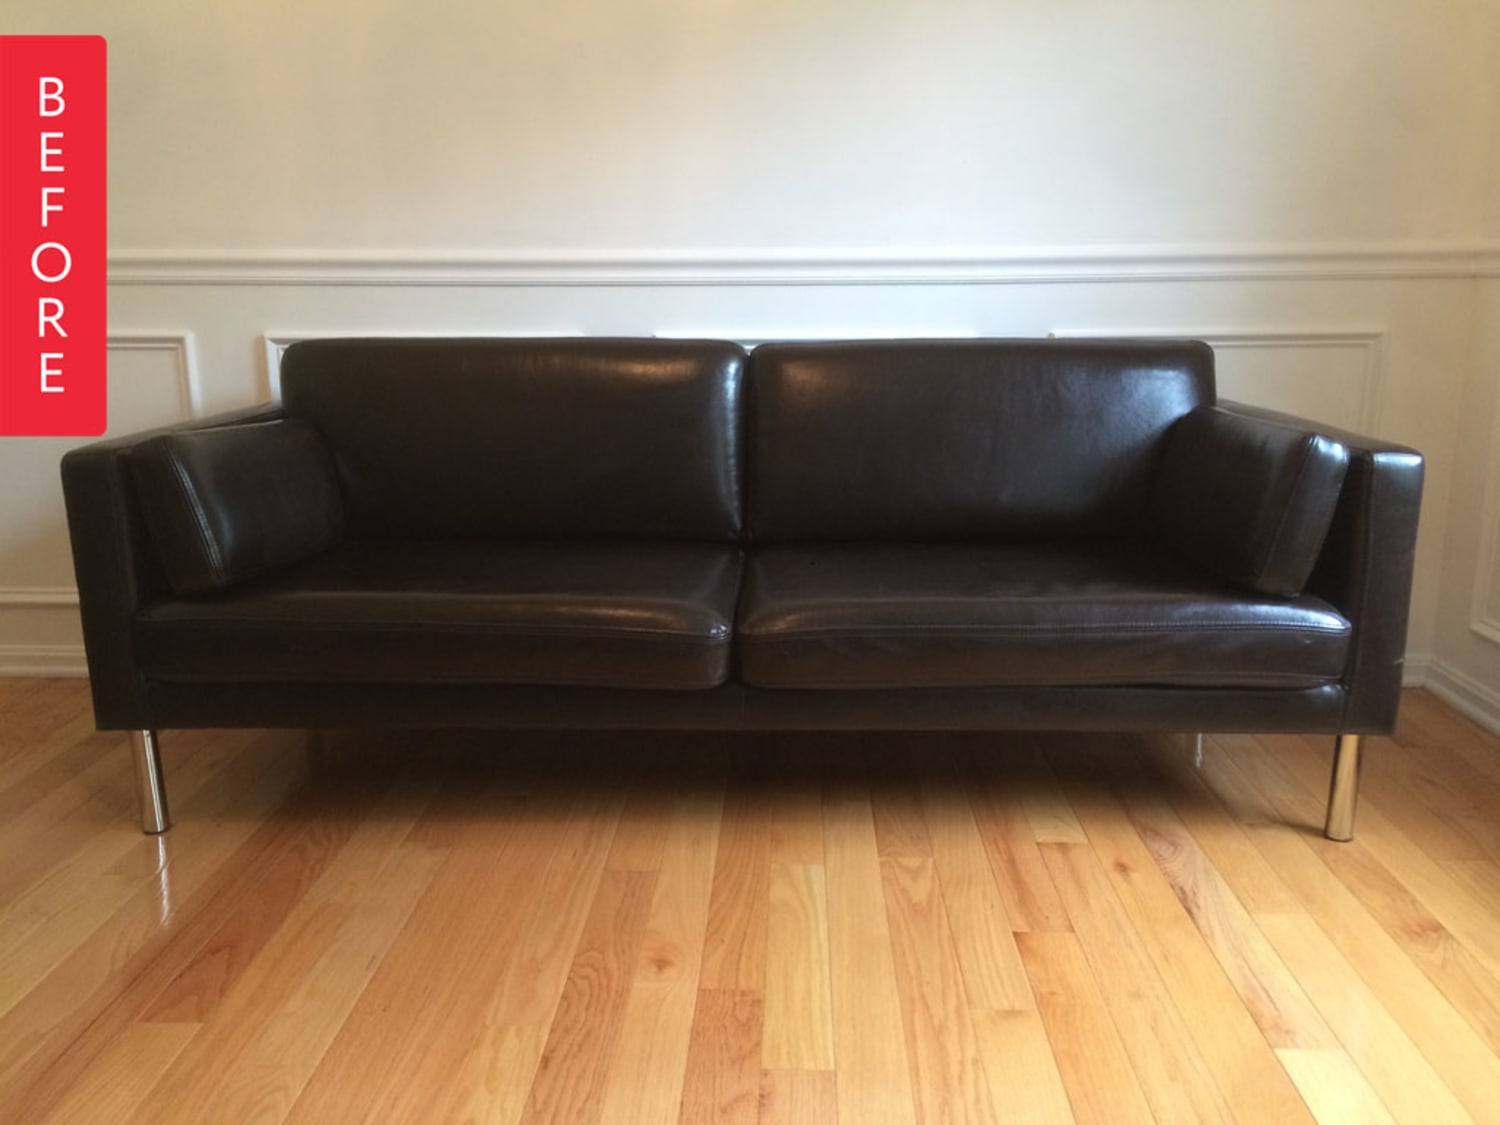 Before & After: DIY Painted Leather Sofa Project ...